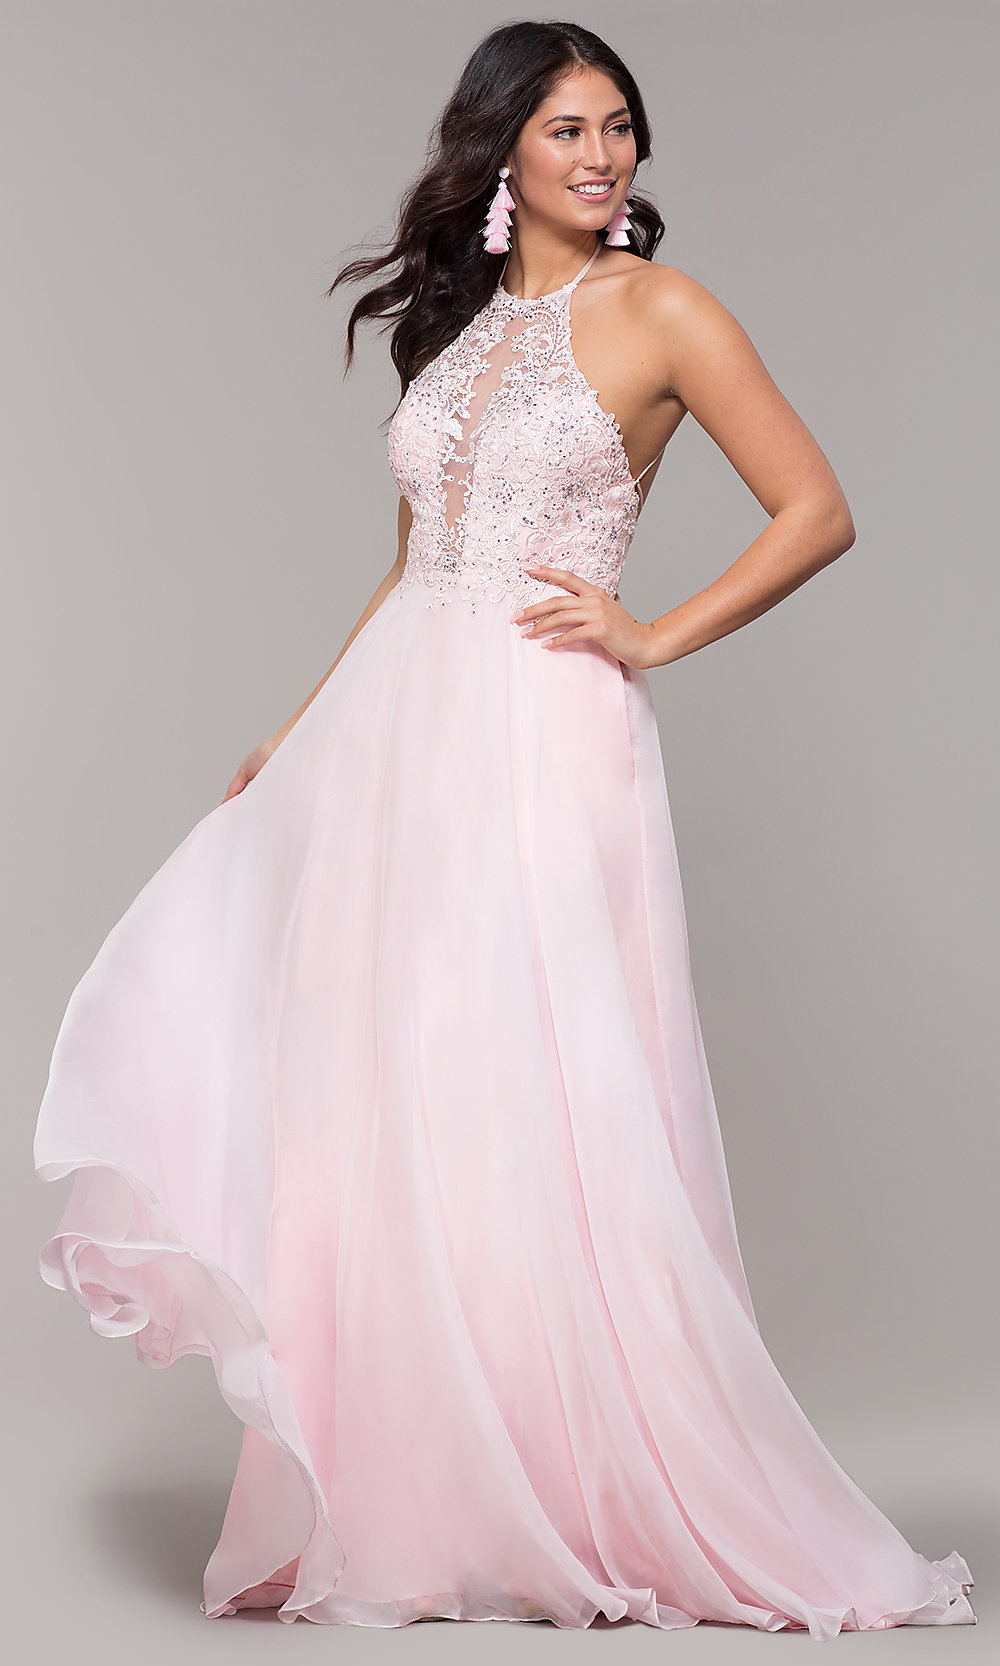 5c906b4d3d5 Embroidered Lace Applique Bodice Long Prom Dress